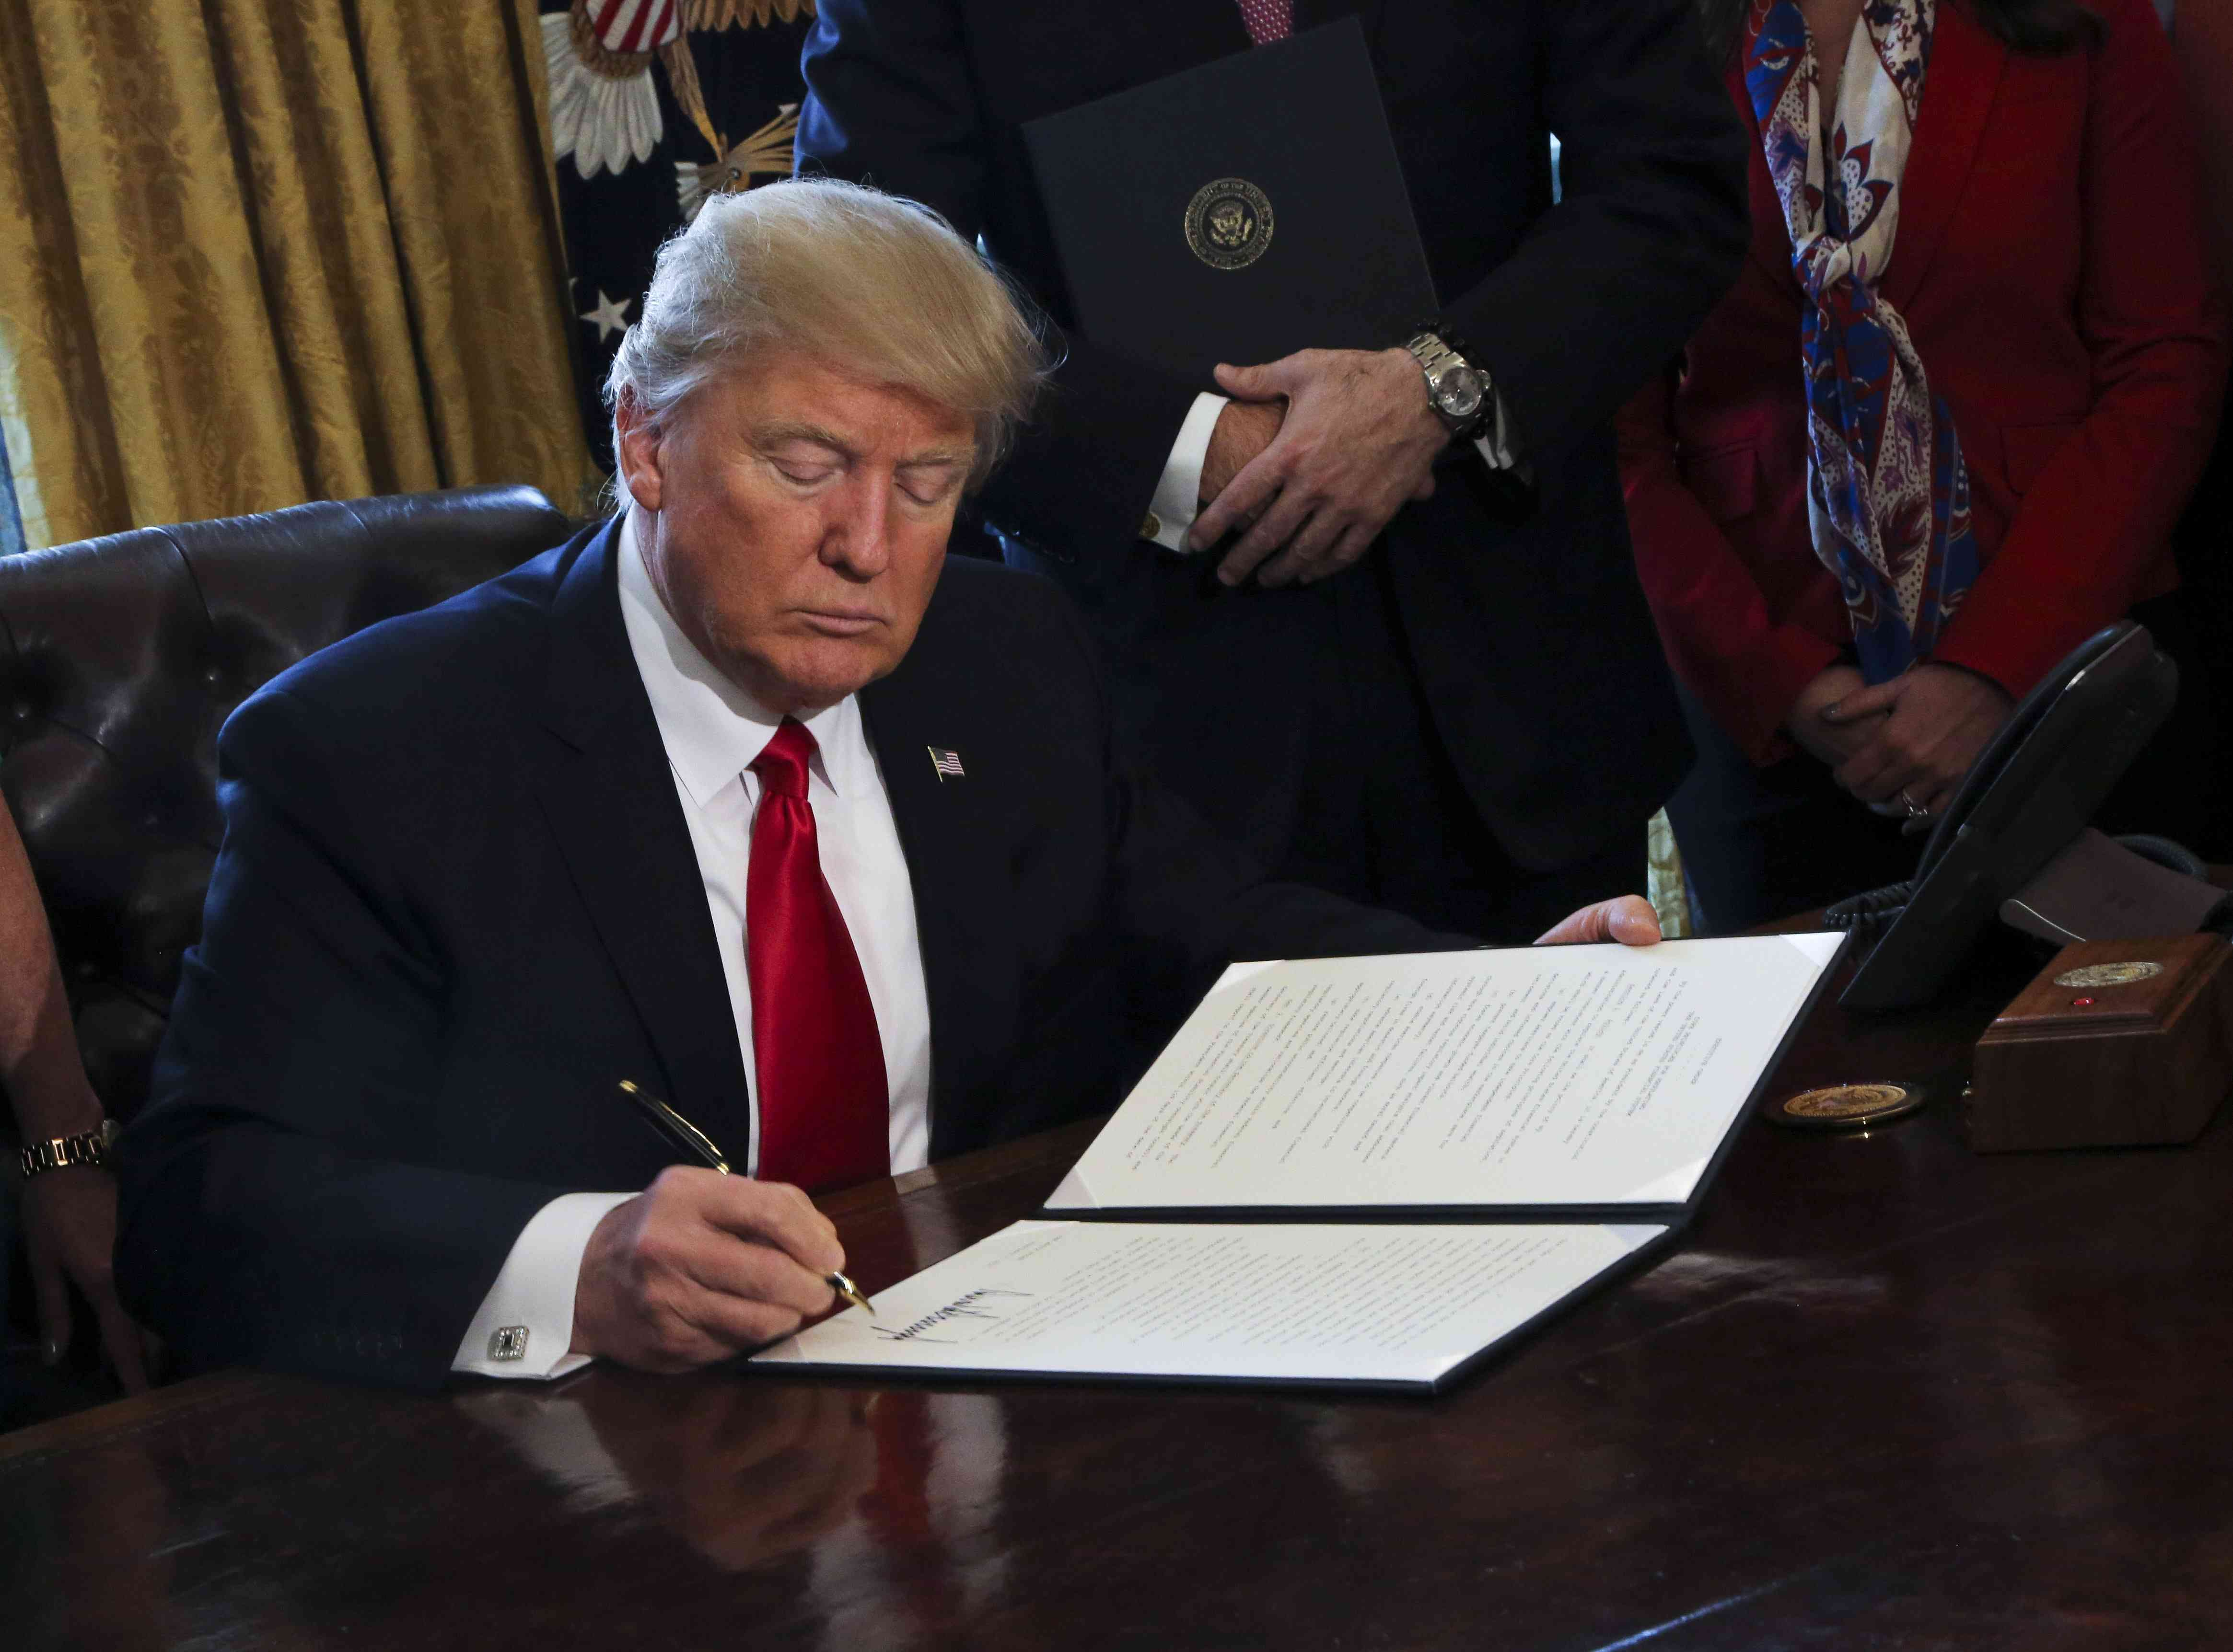 U.S. President Donald Trump signs Executive Orders, including an order to review the Dodd-Frank Wall Street to roll back financial regulations of the Obama era.